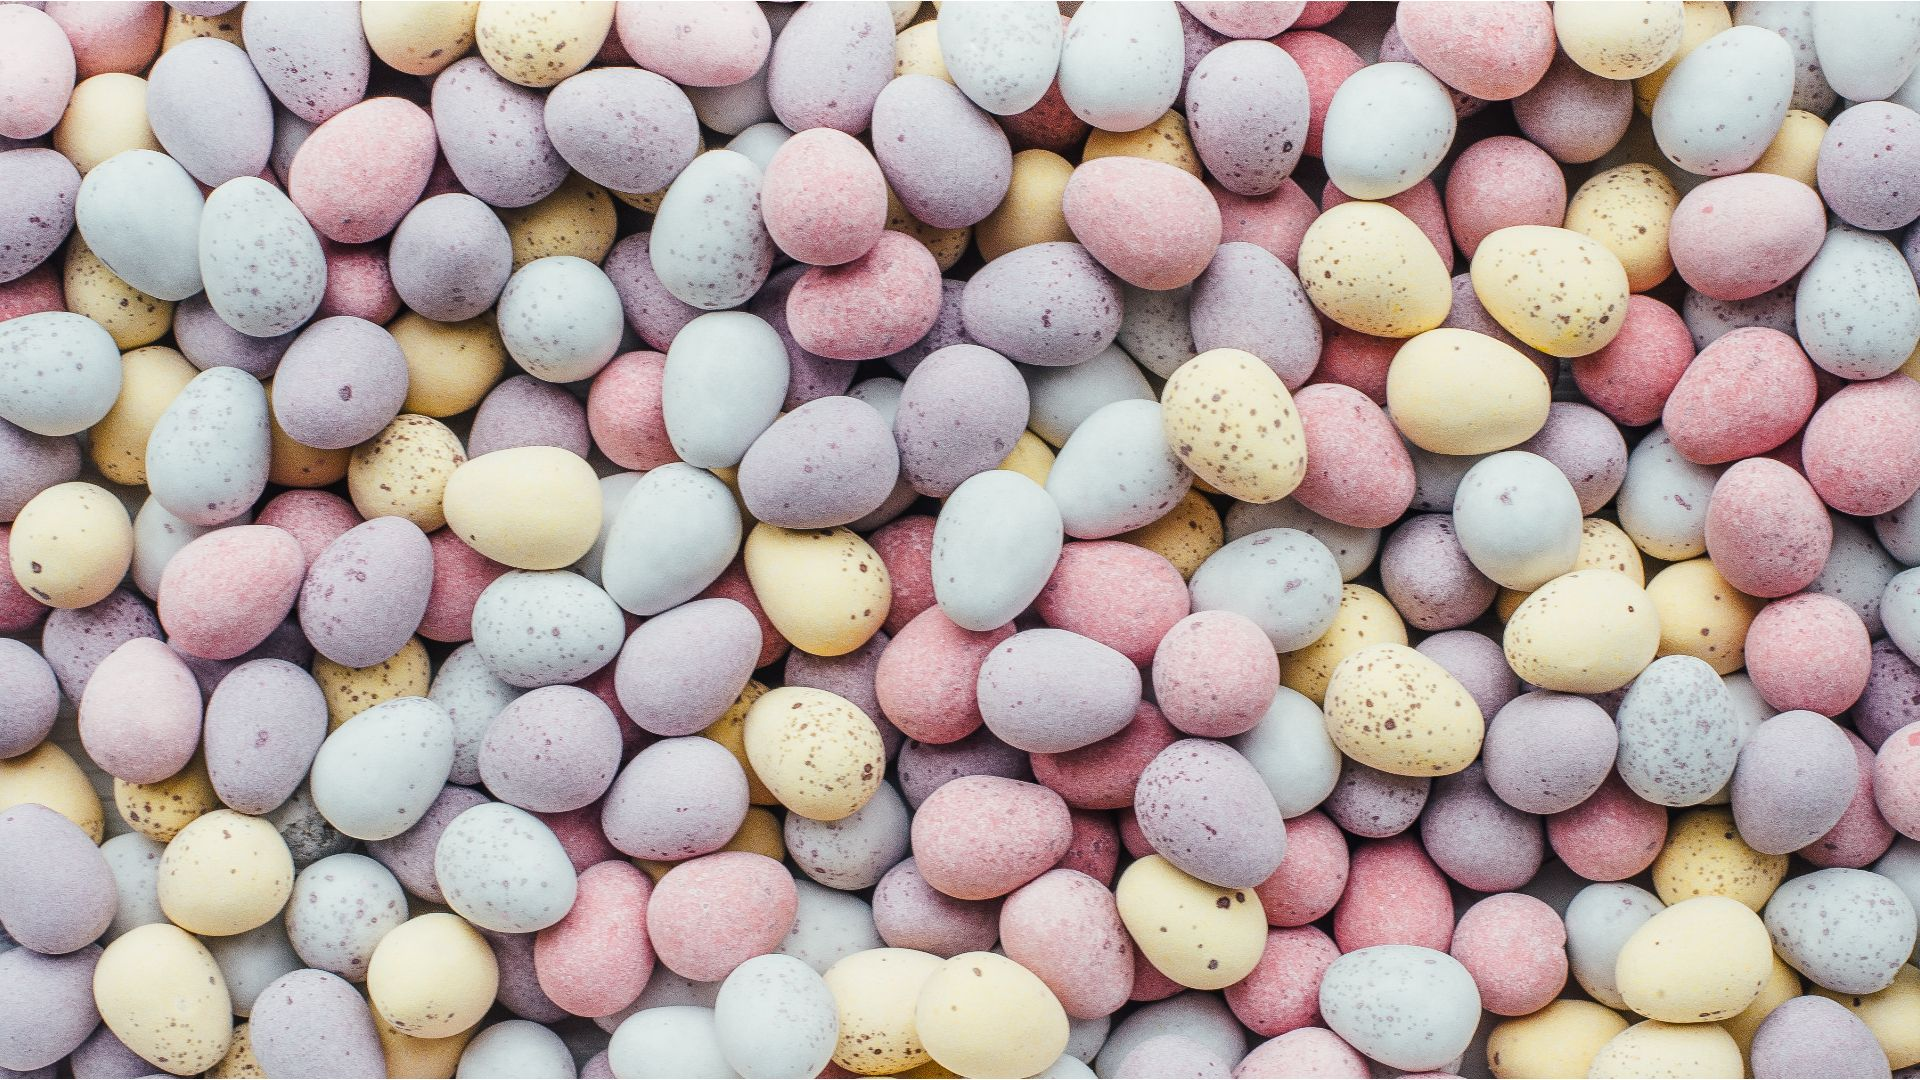 a wallpaper featuring pastel eggs for Easter